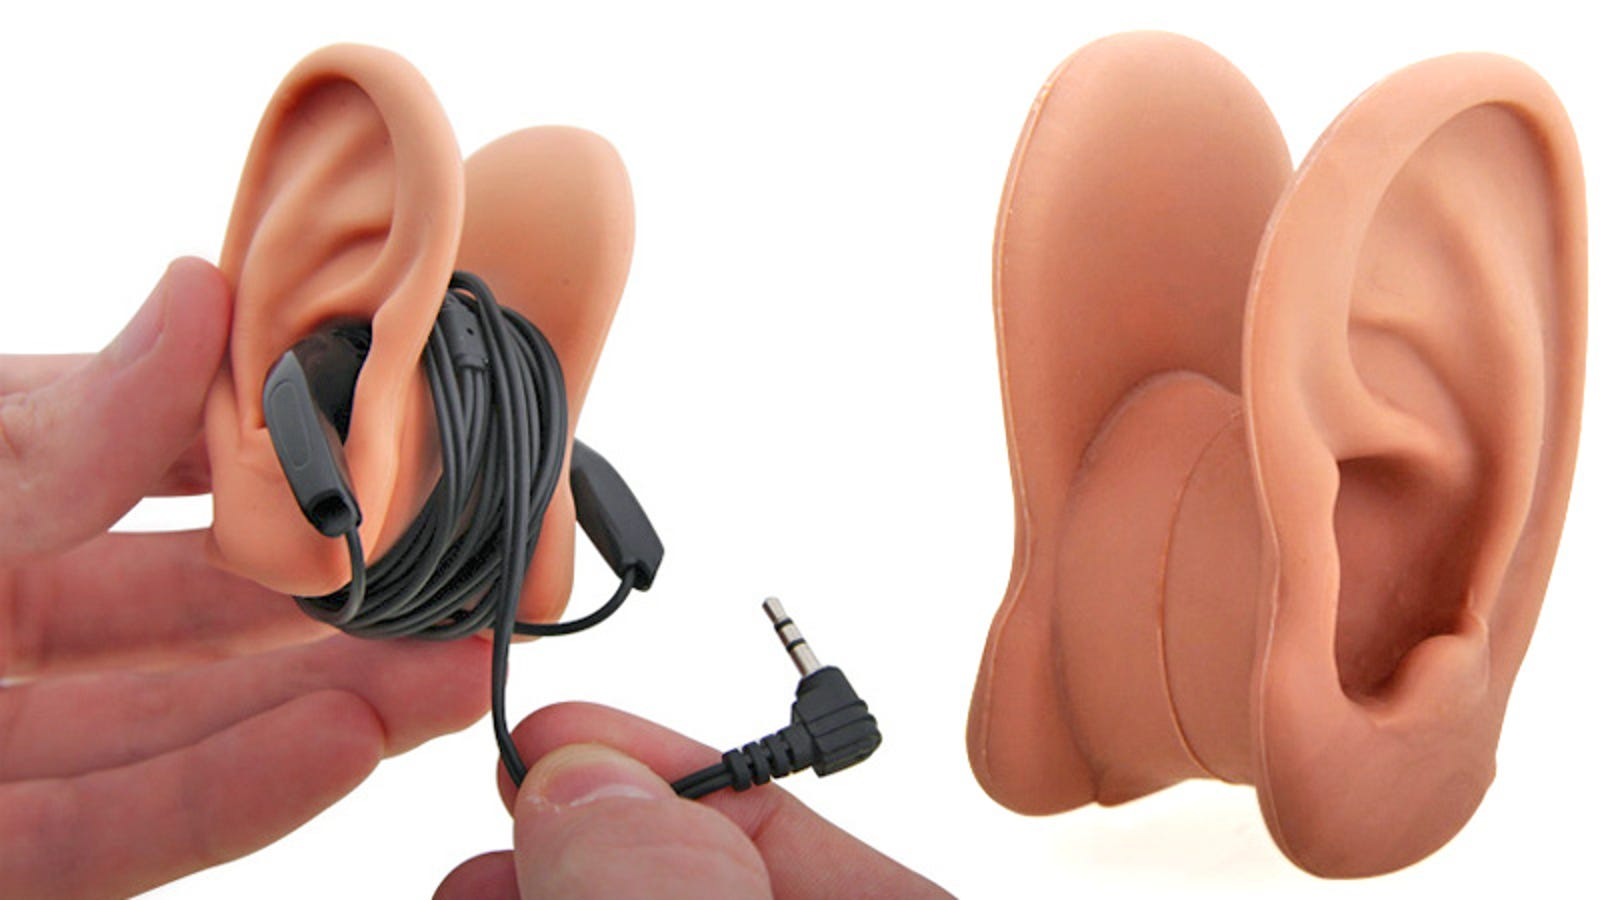 kids earbuds minions - Where Better To Store Your Earbuds Than On a Pair Of Ears?